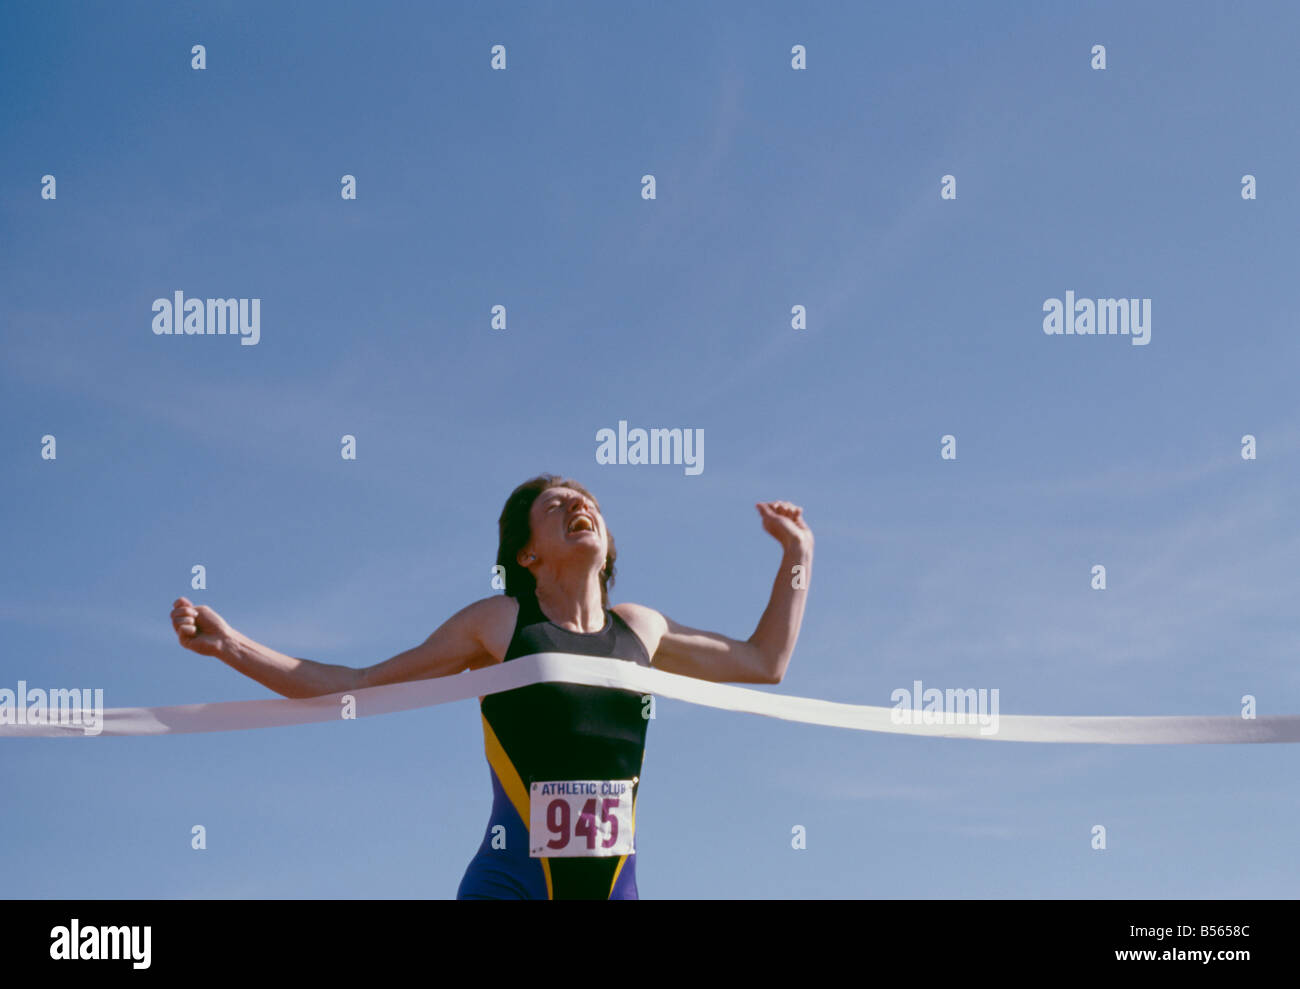 Women victoriously crossing the finish line of track race Stock Photo